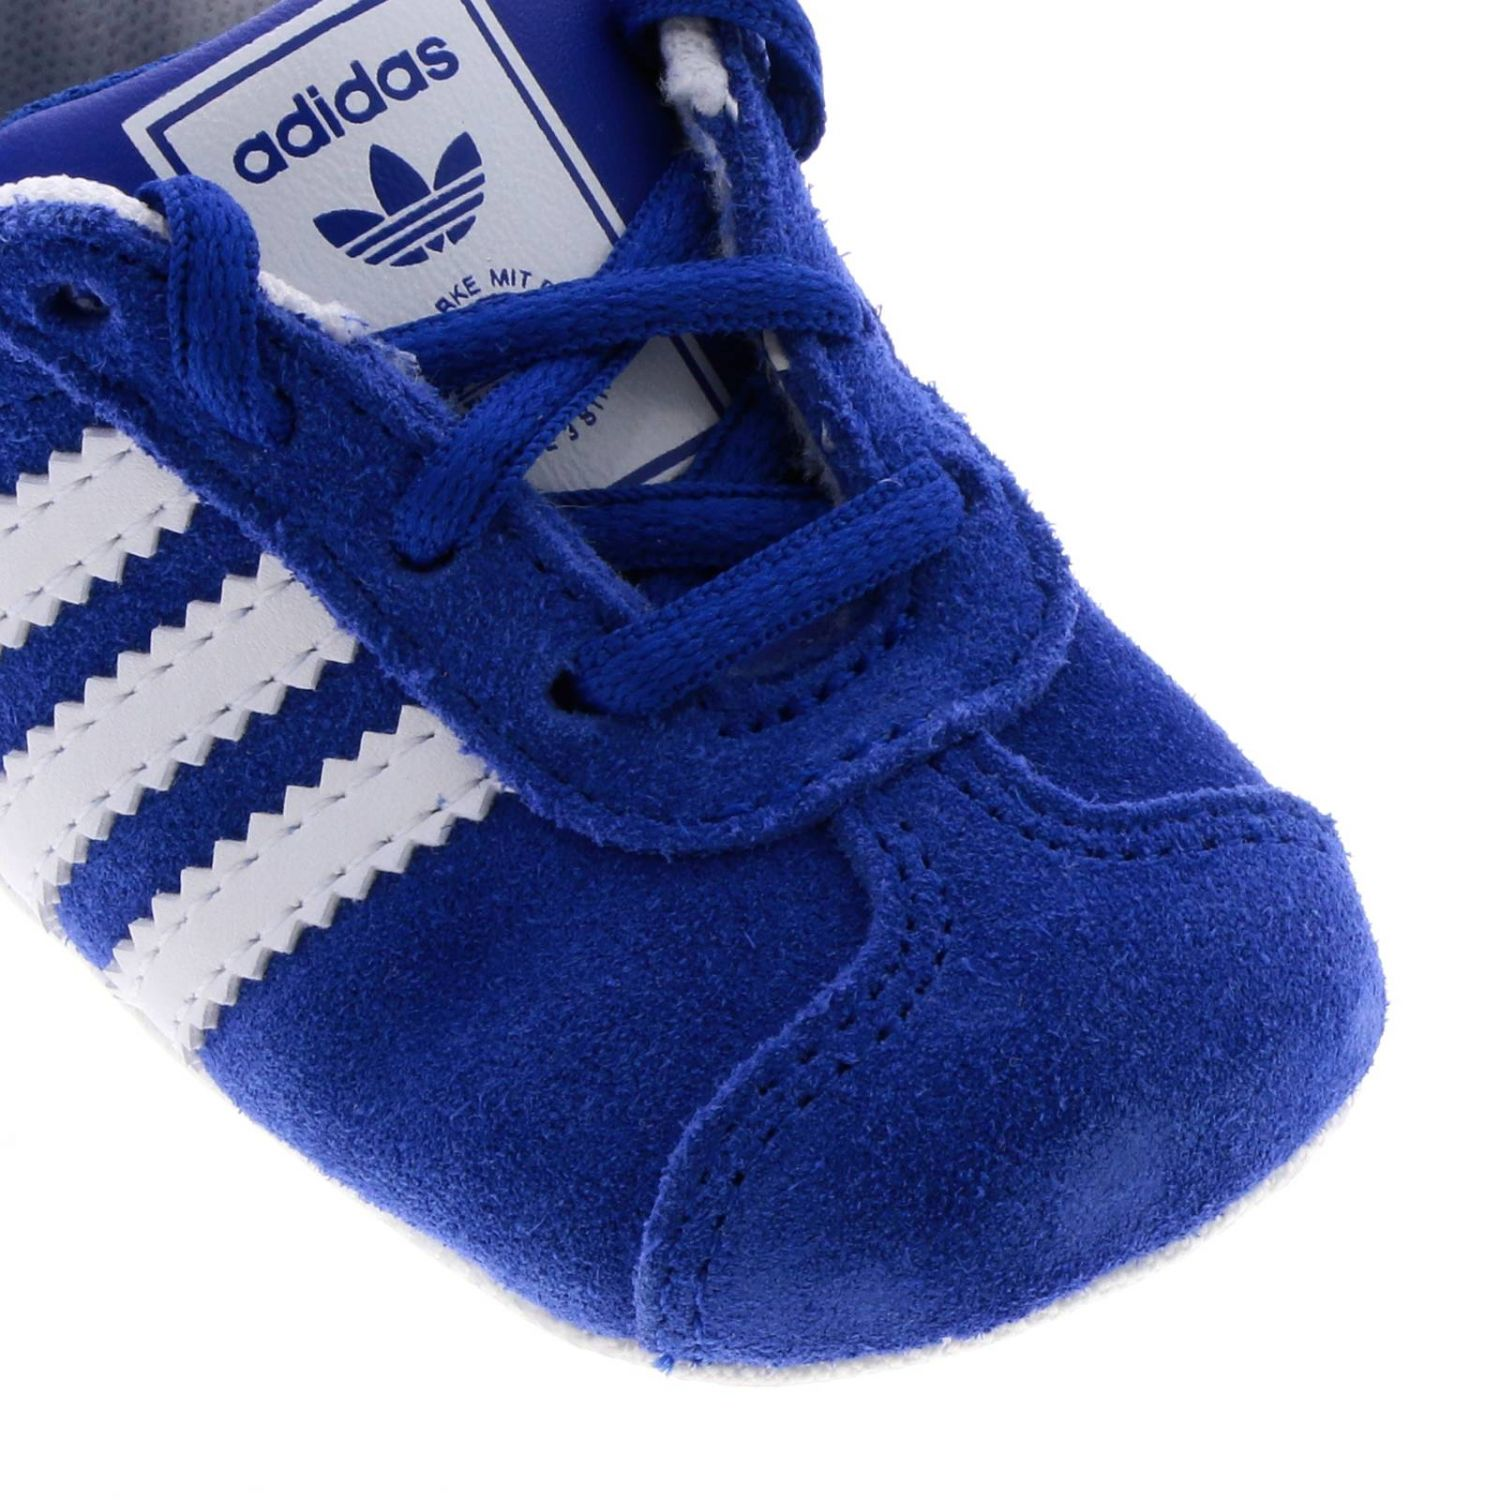 Shoes kids Adidas Originals royal blue 3